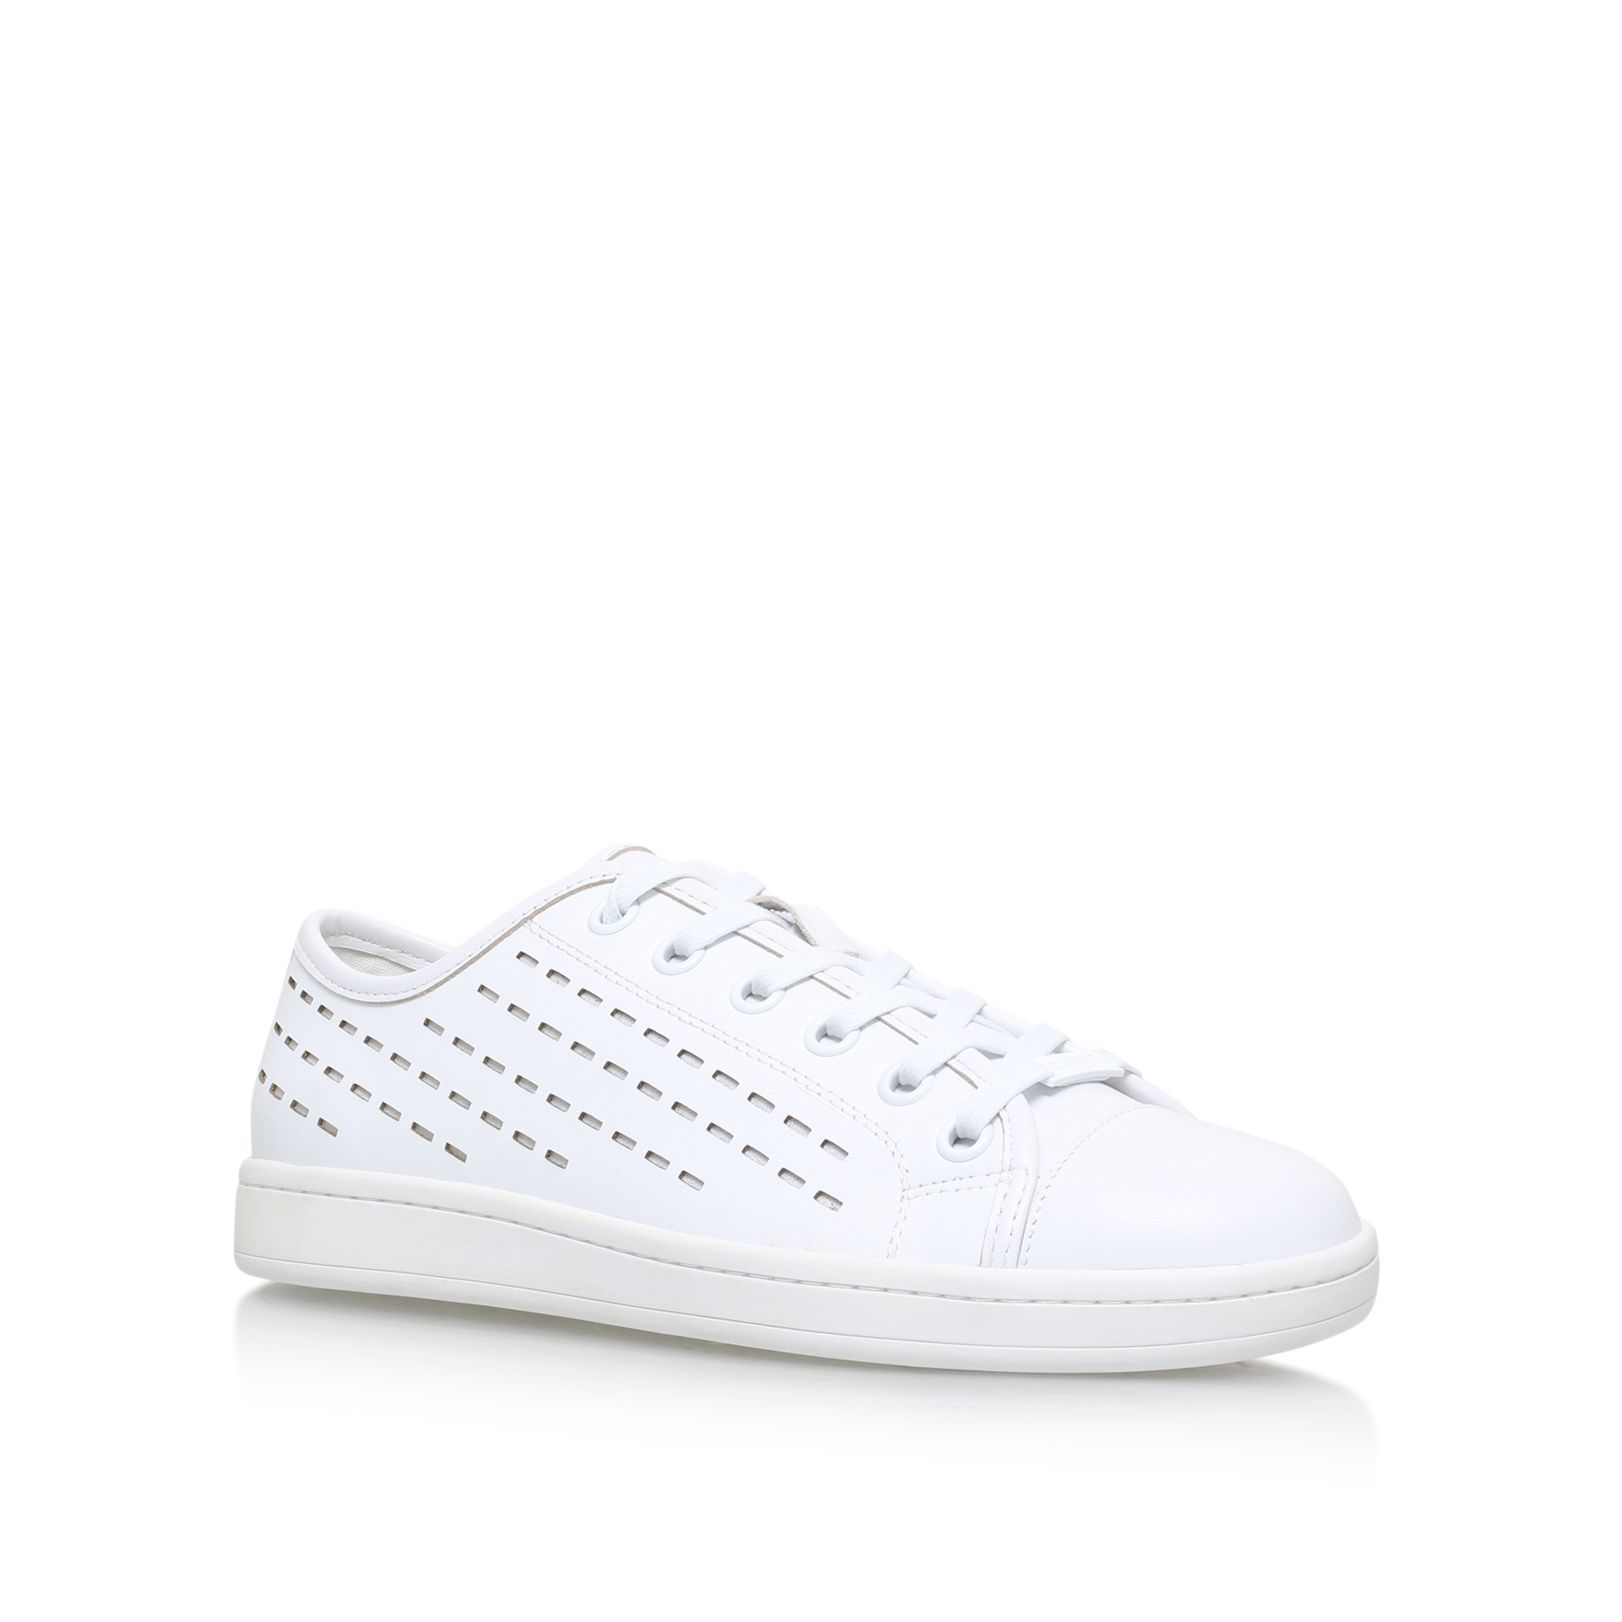 DKNY Baylee flat lace up sneakers White